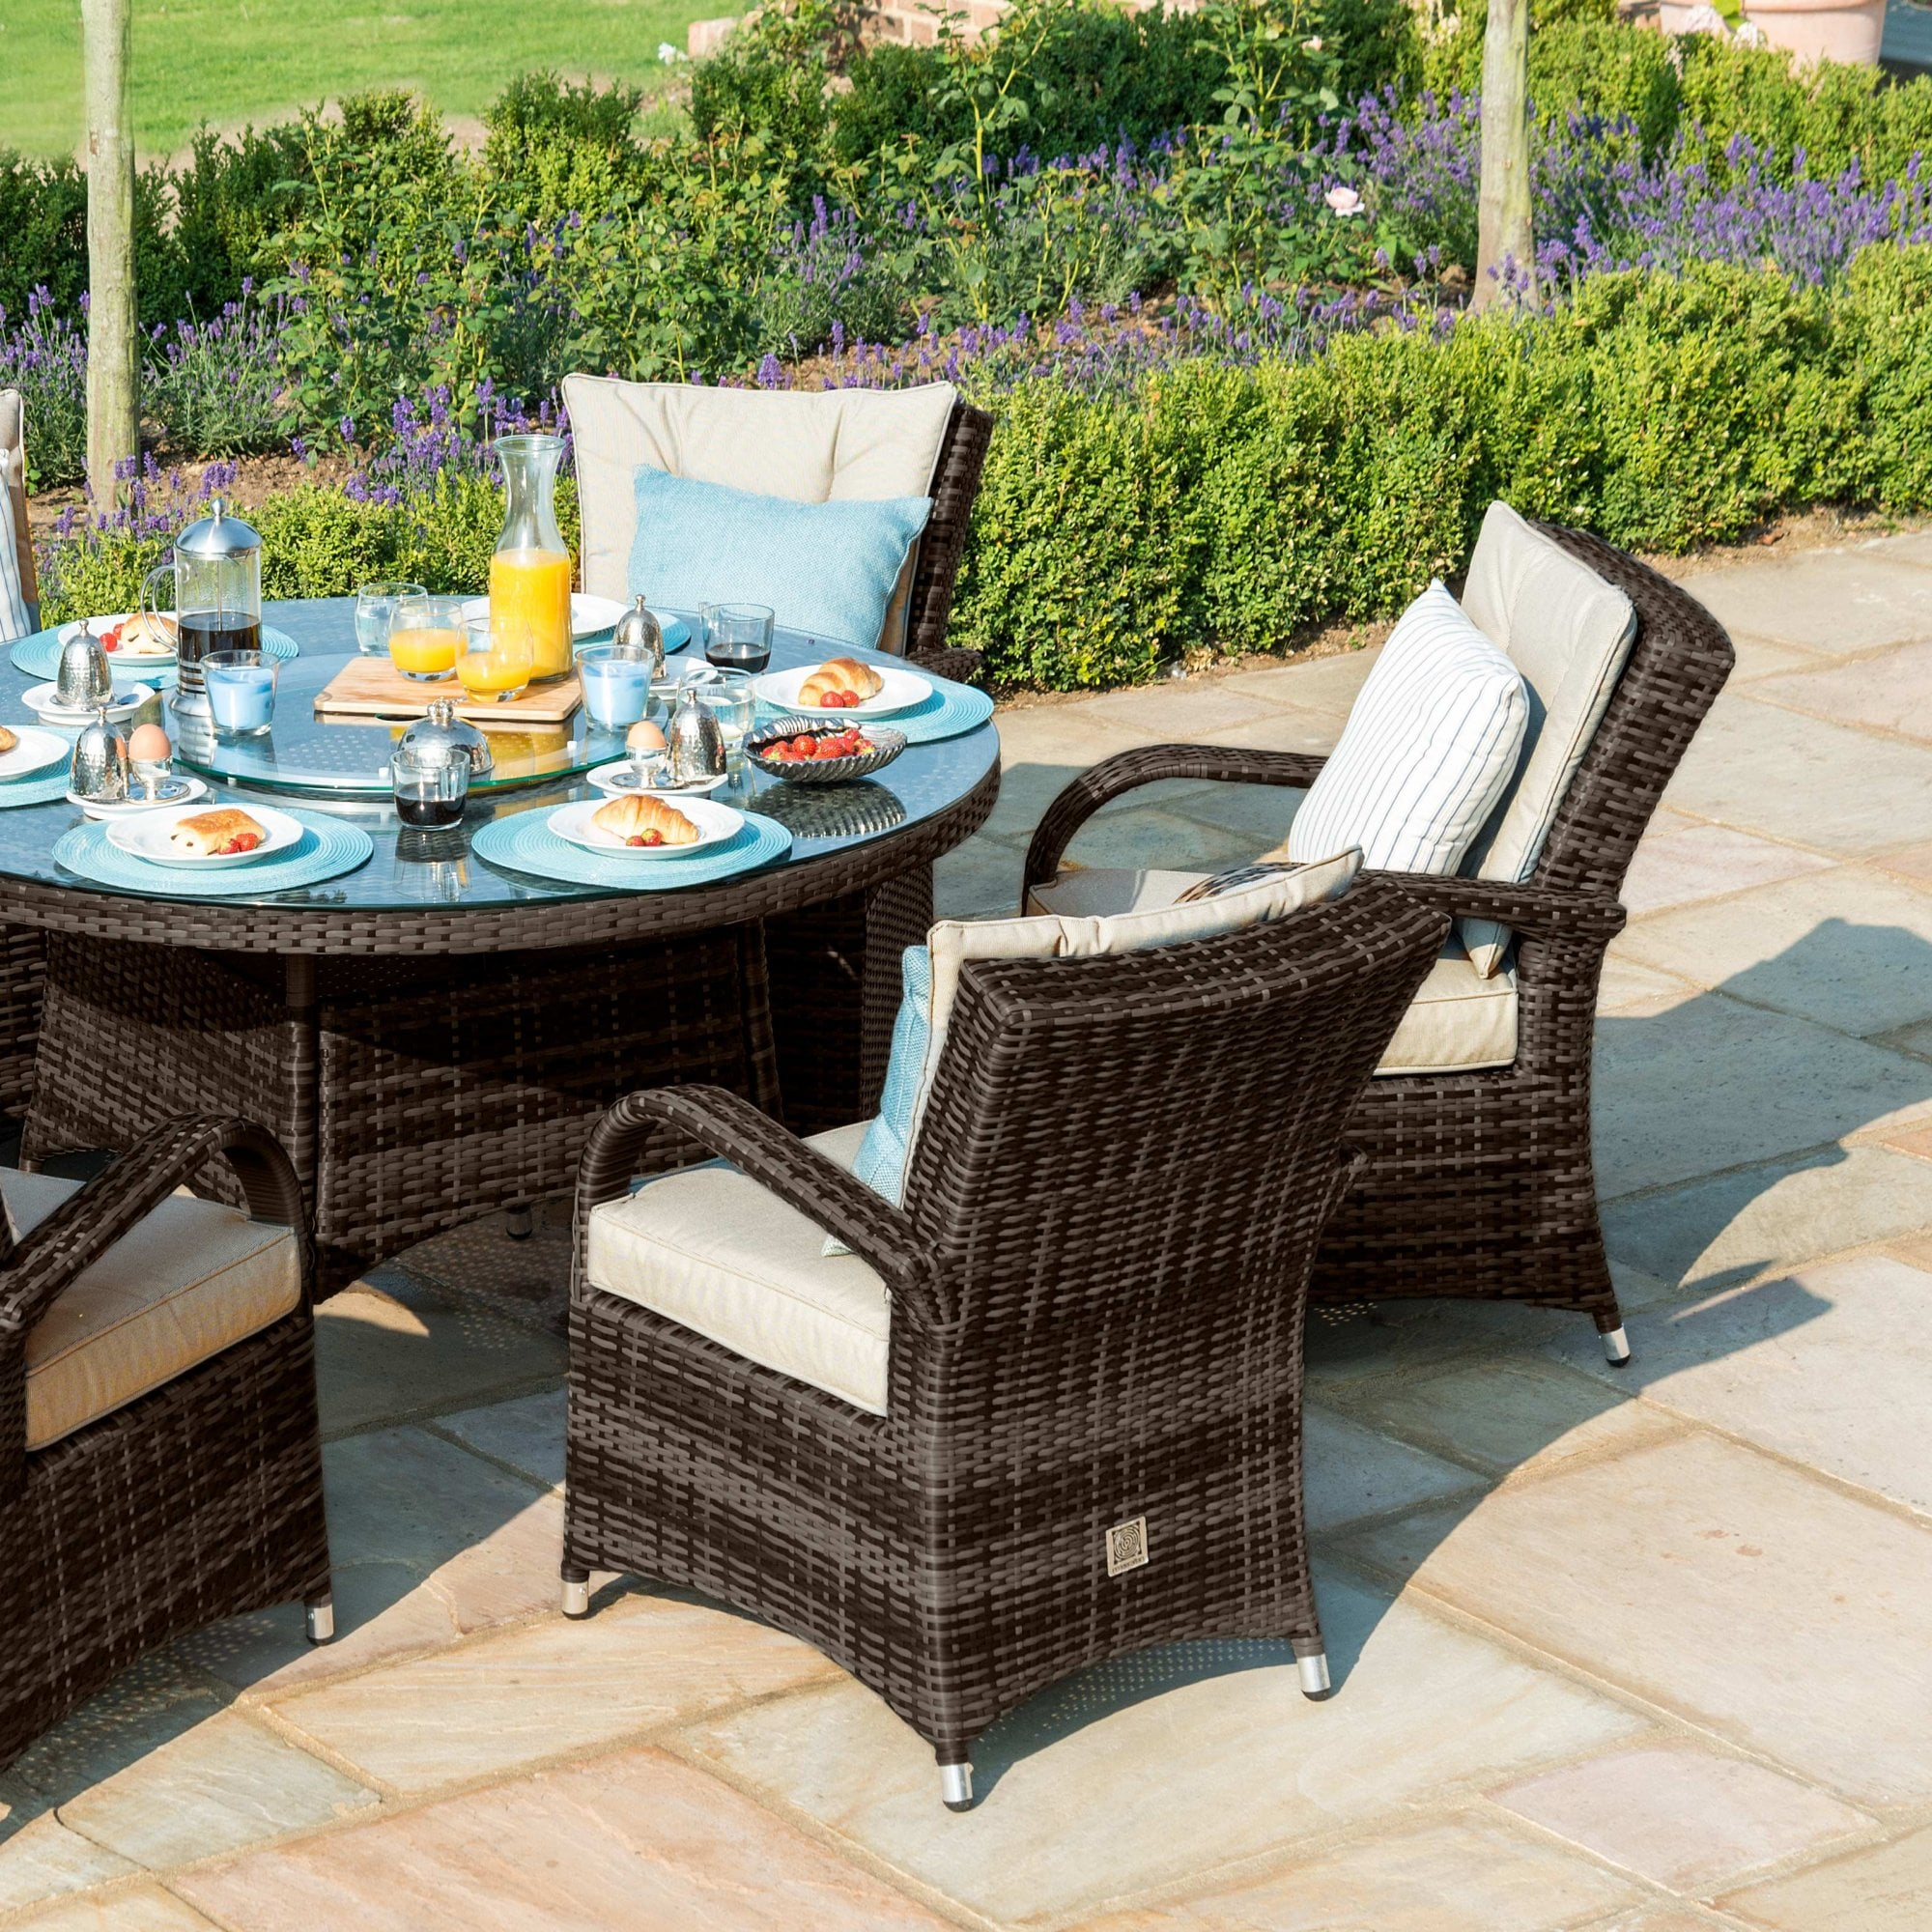 Texas 8 Seat Round Dining Set With Ice Bucket Lazy Susan Outdoor Living From Breeze Furniture Uk